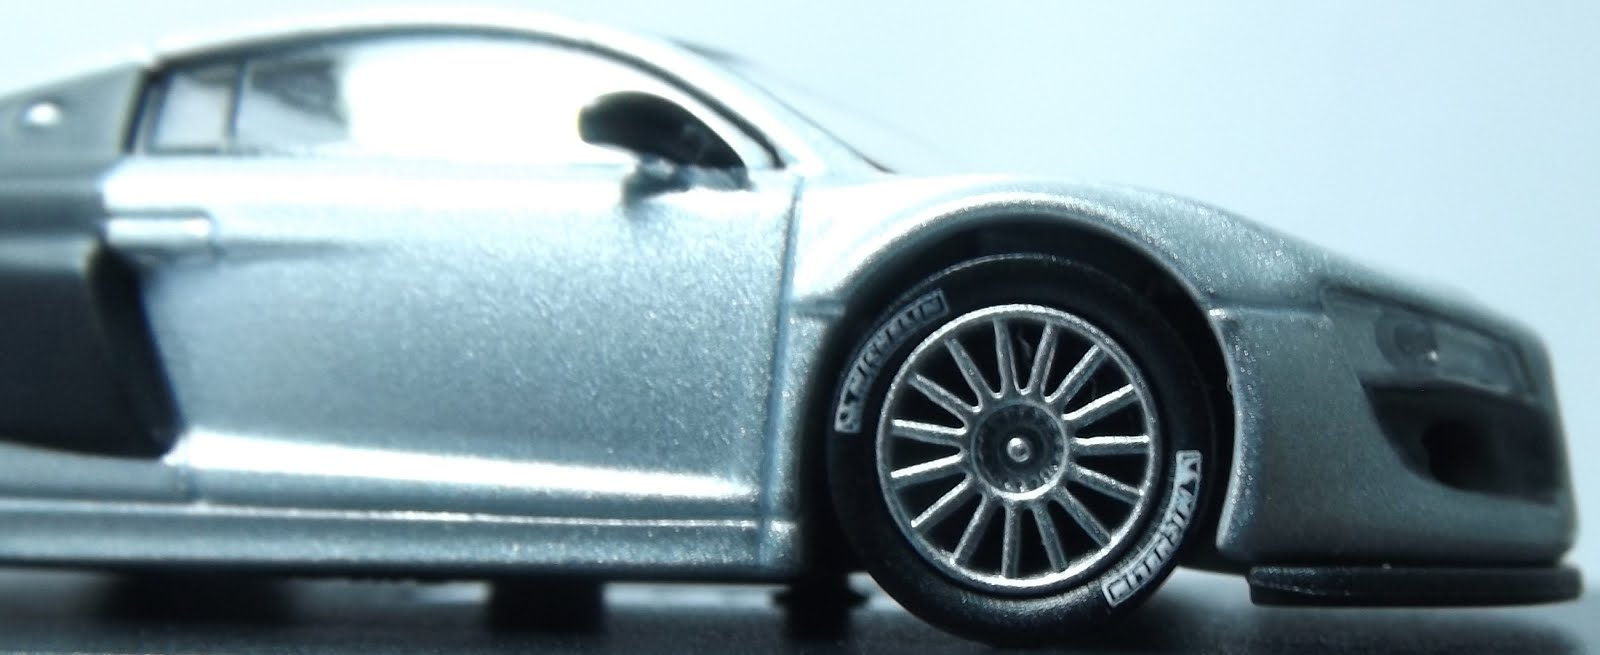 Diecast kyosho audi r8 lms michelin tires